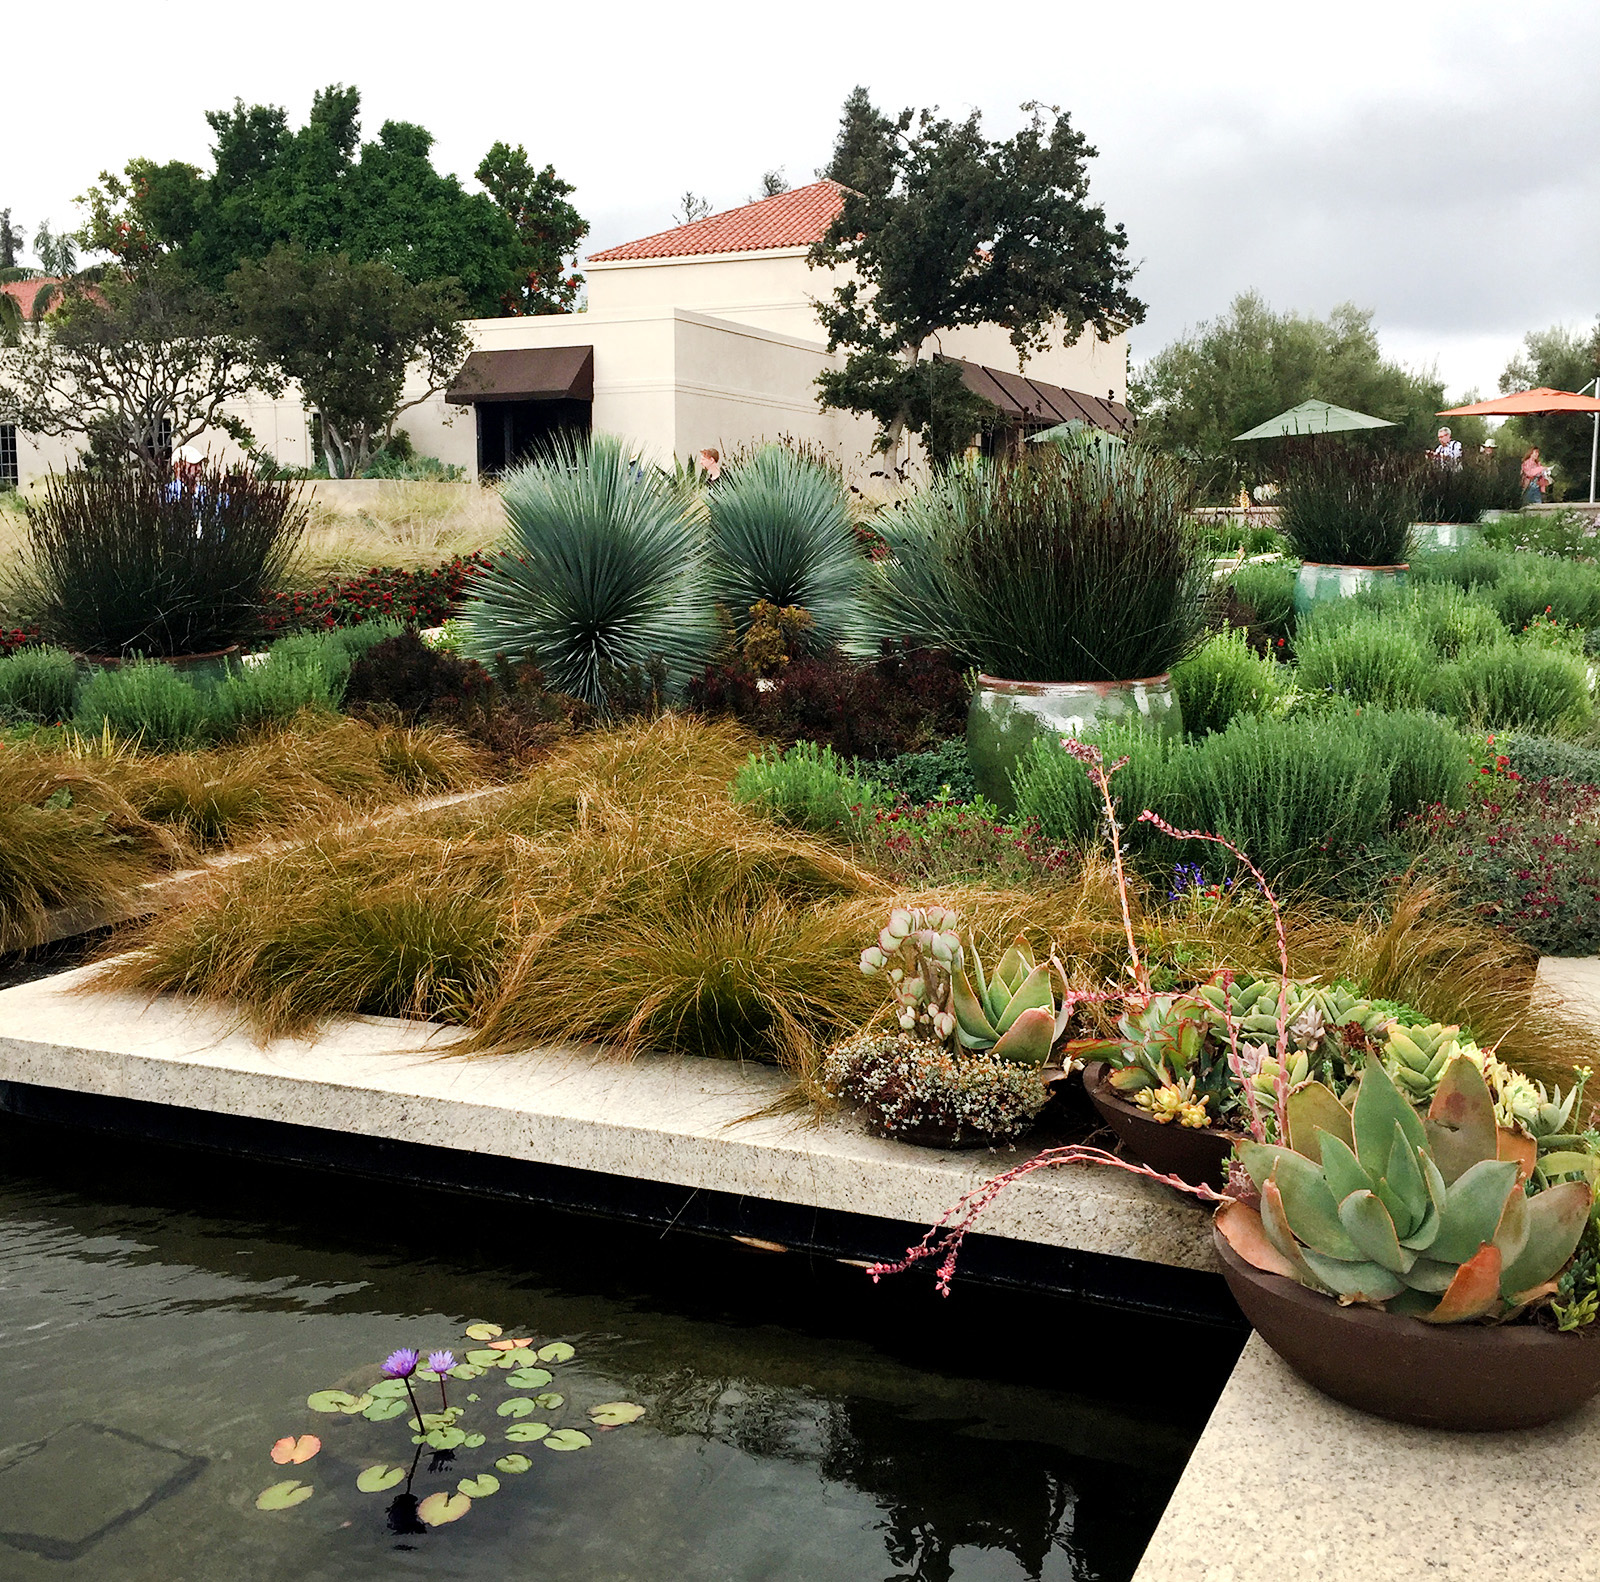 I Recently Enjoyed A Fabulous Day At The Huntington Library, Art  Collections And Botanical Gardens U2013 A Day Spent As Part Of The Annual ASLA  National ...